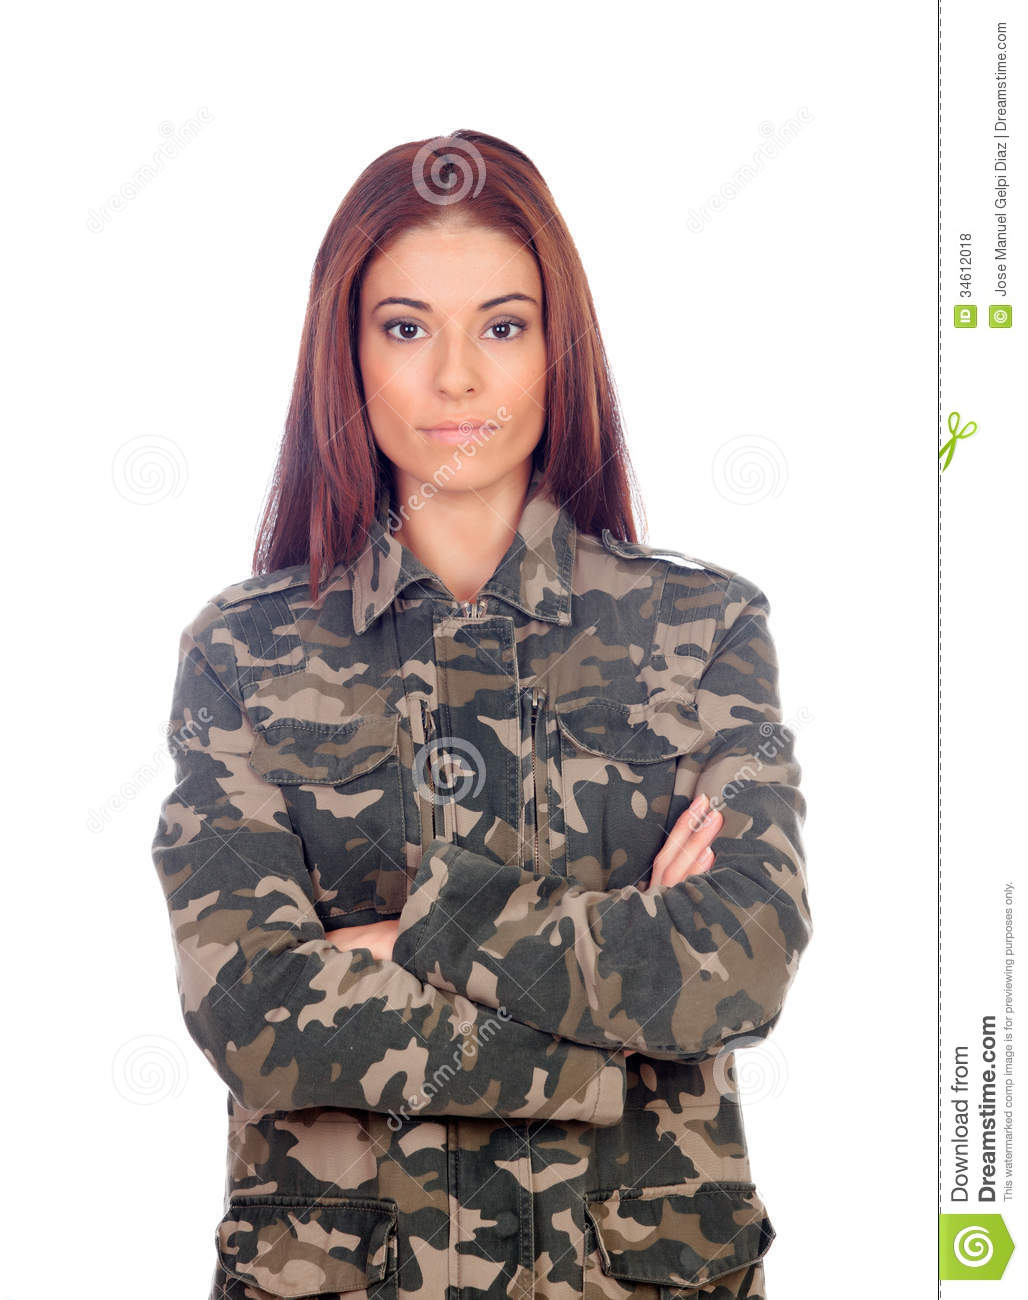 Attractive Girl With Military Style Jacket Royalty Free Stock